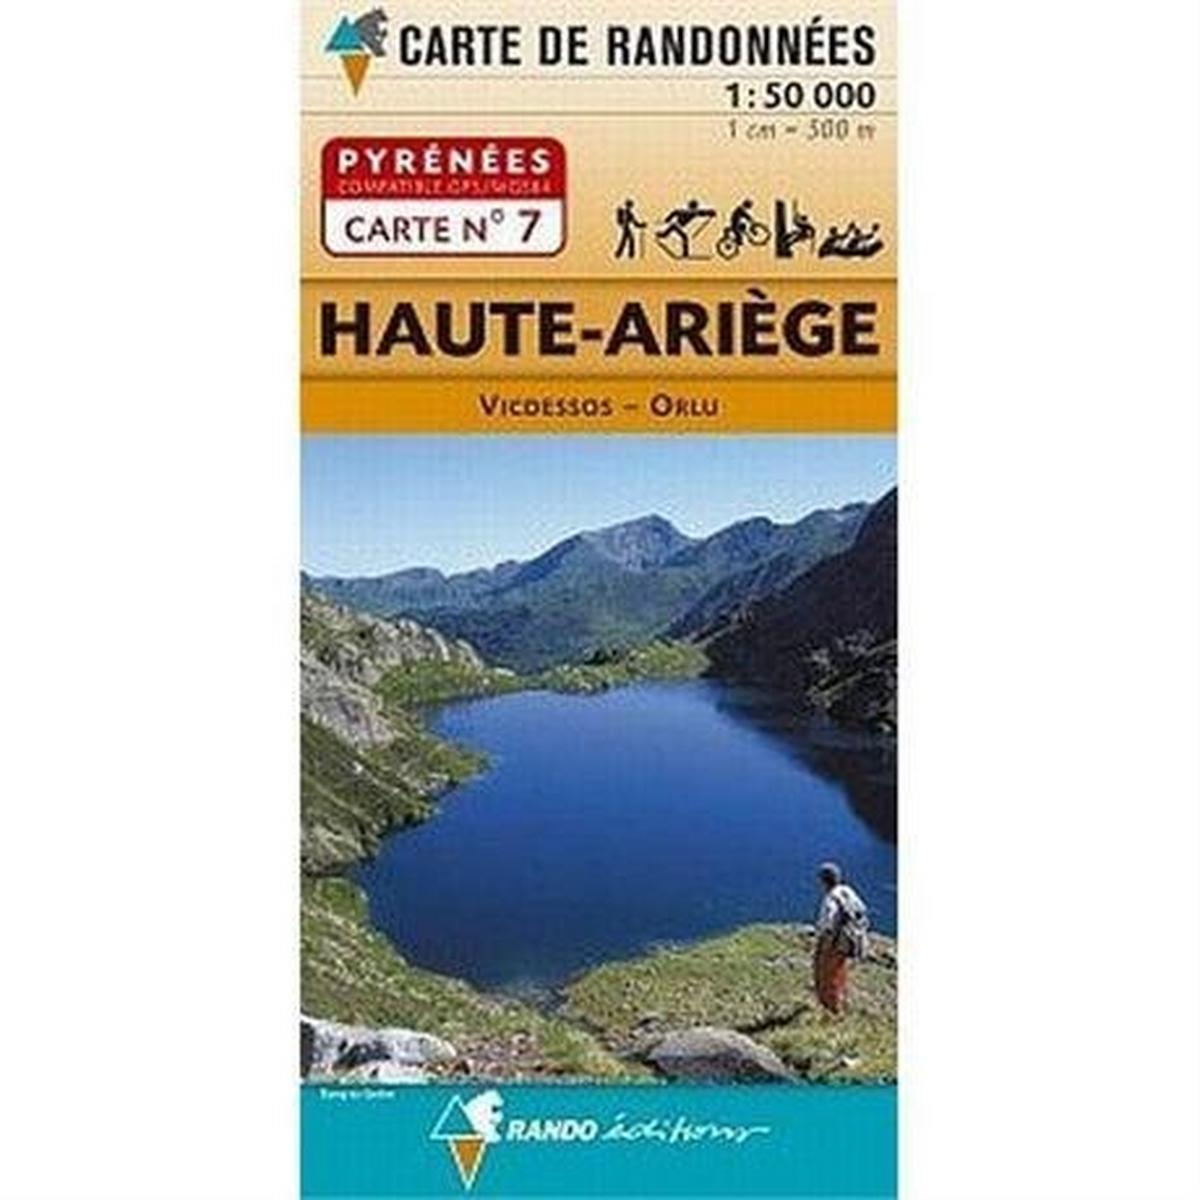 Ign Maps France IGN Map Pyrenees Haute-Ariege